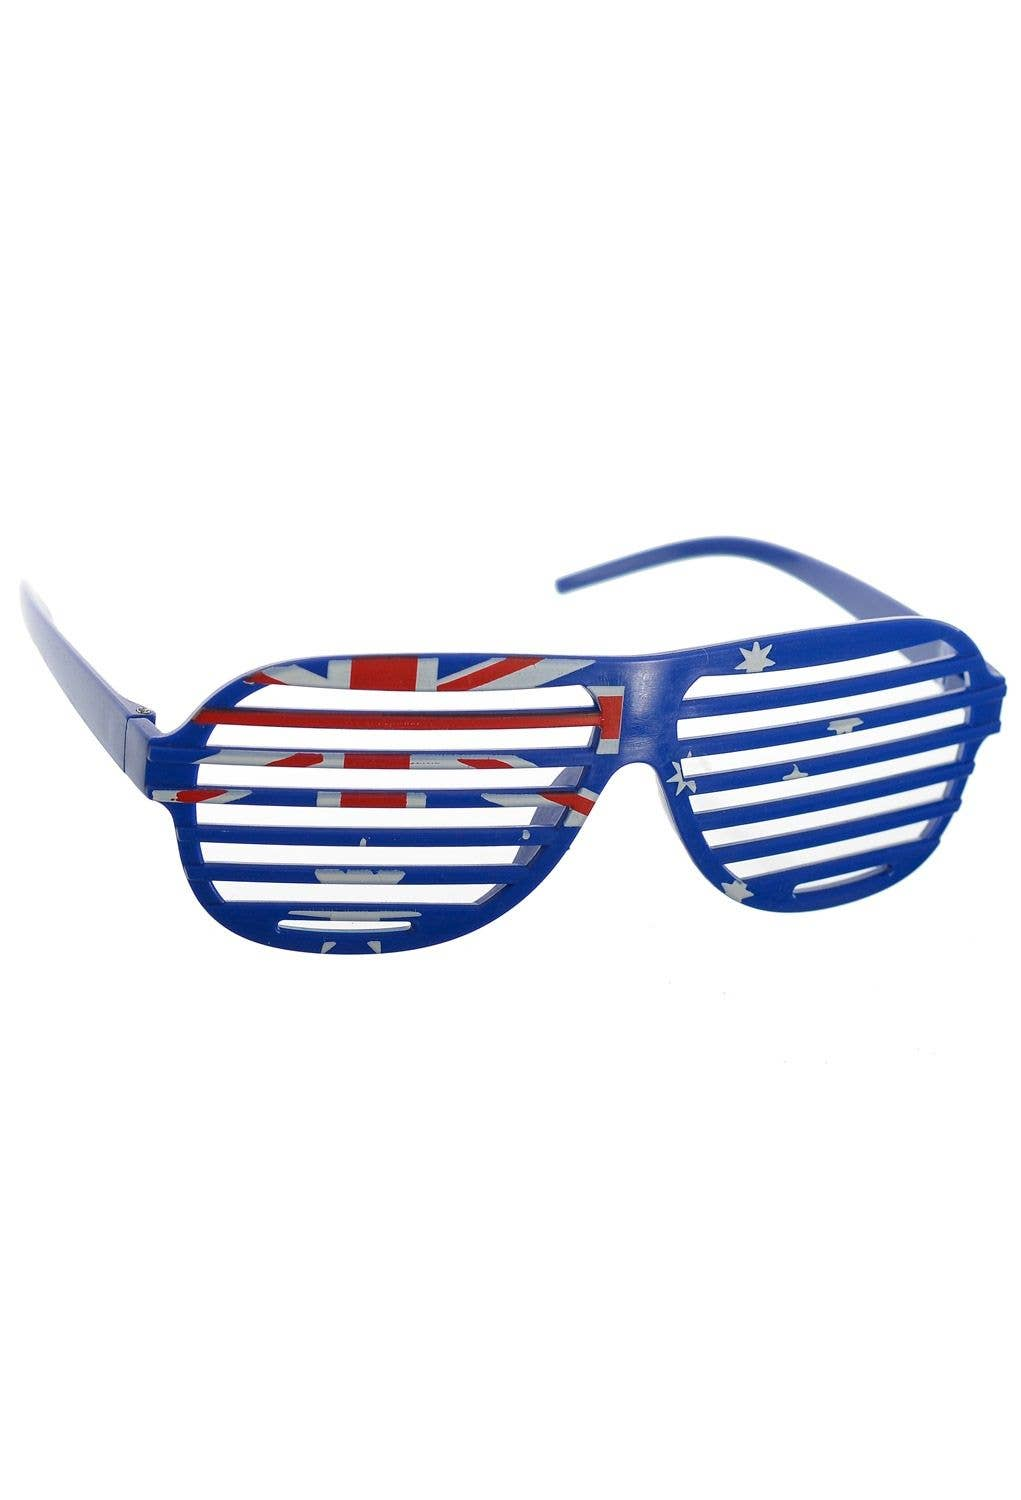 e627364f9f8 Australian Flag Novelty Shutter Glasses